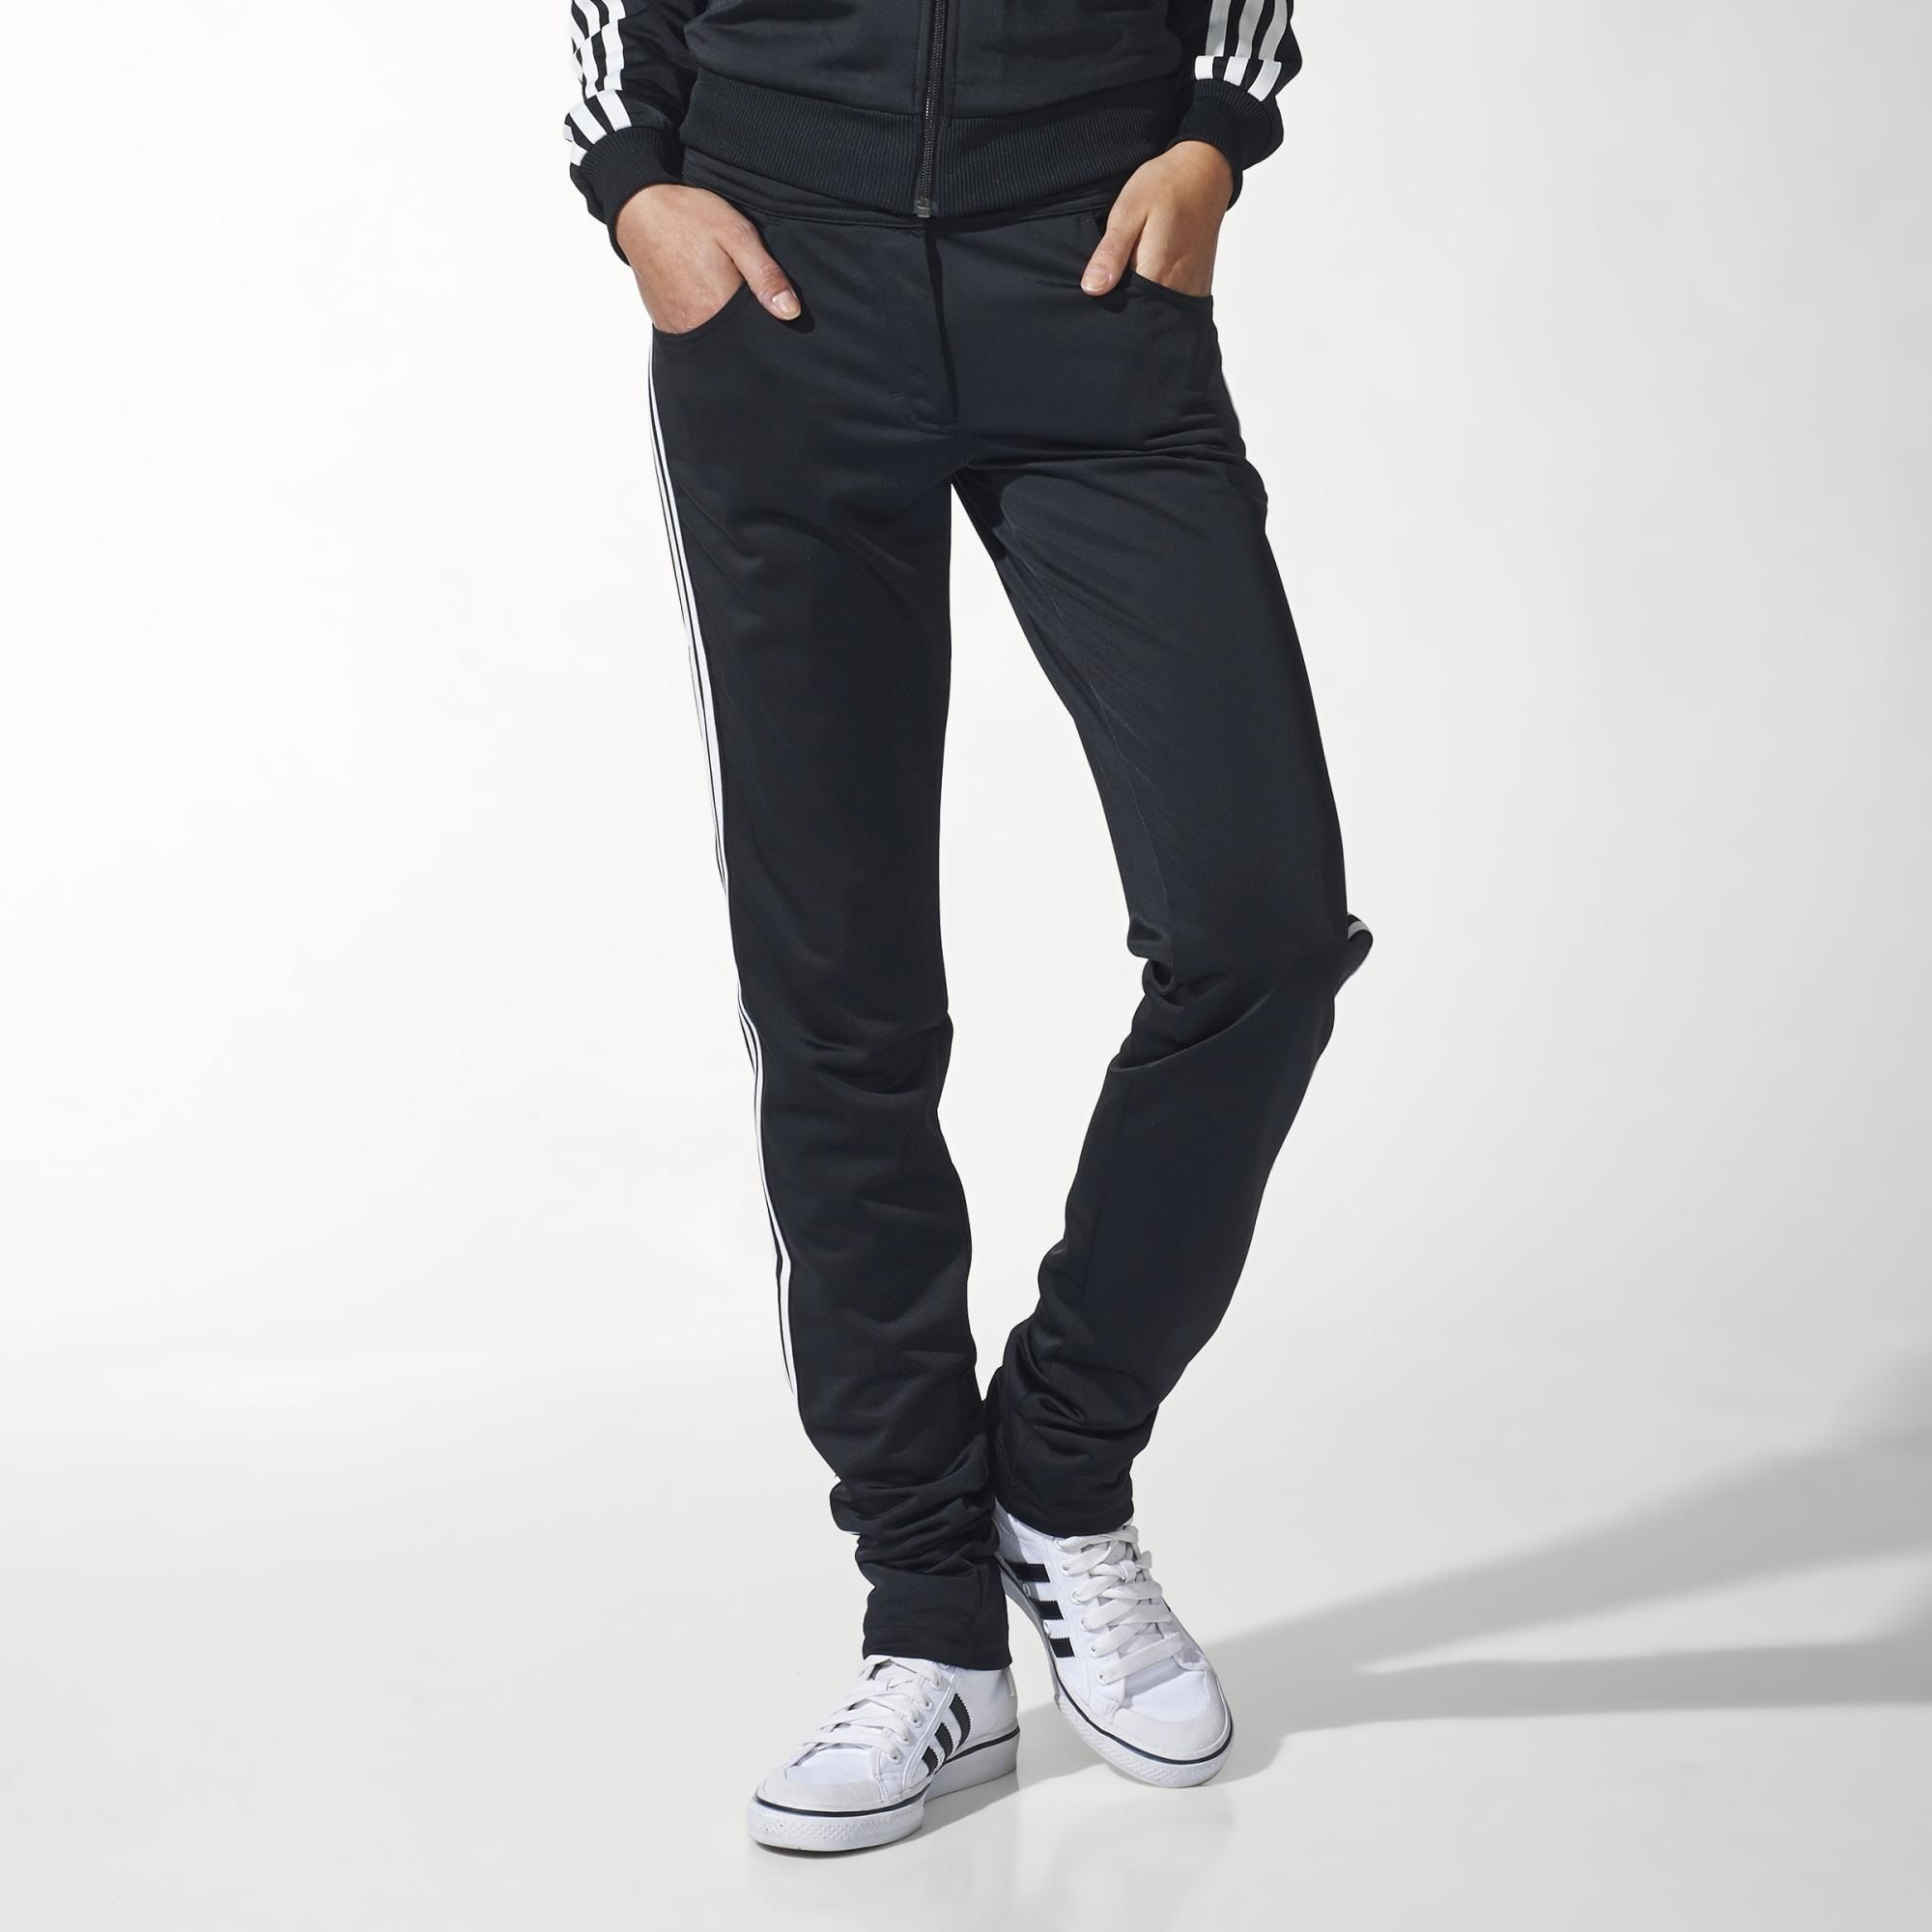 8e8ea789078 adidas - Slim-fit Supergirl Trainingsbroek | Wish list - Adidas ...